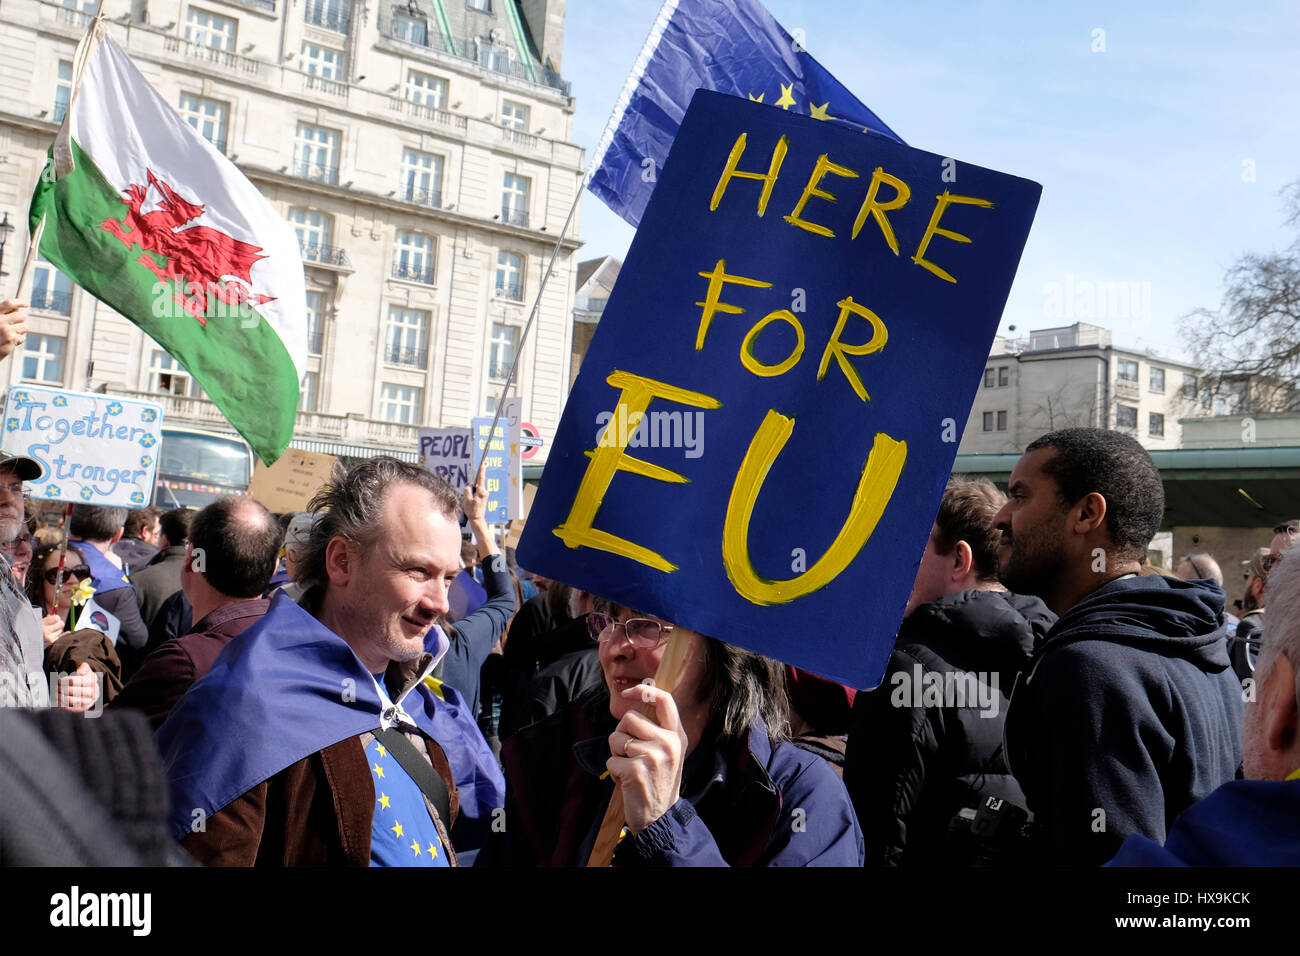 A protester holds a placard reading 'here for Europe' at a march against Brexit in central London. - Stock Image